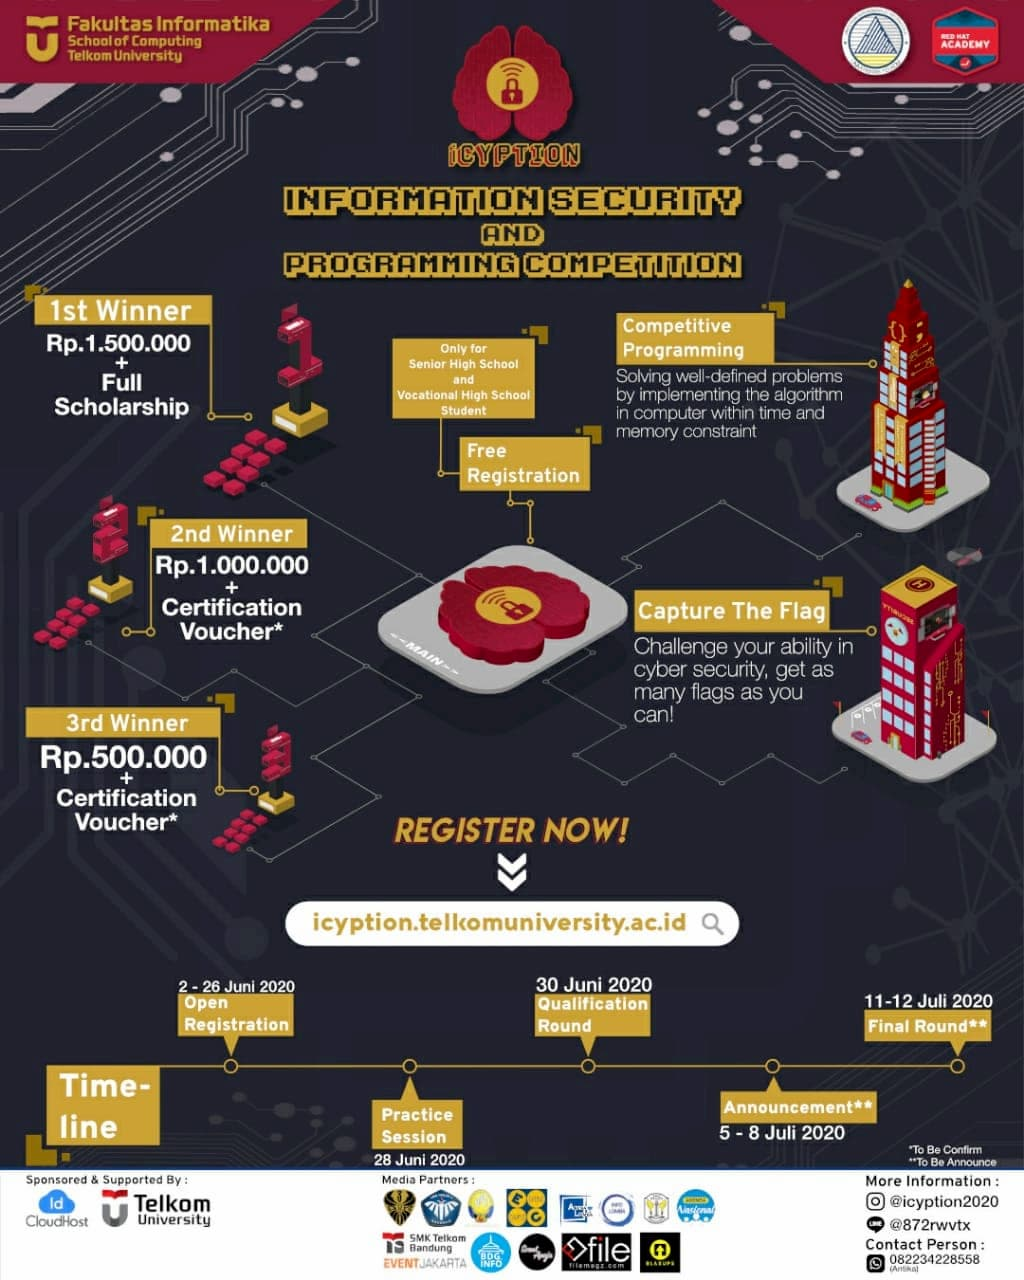 Information Scurity & Programming Competition